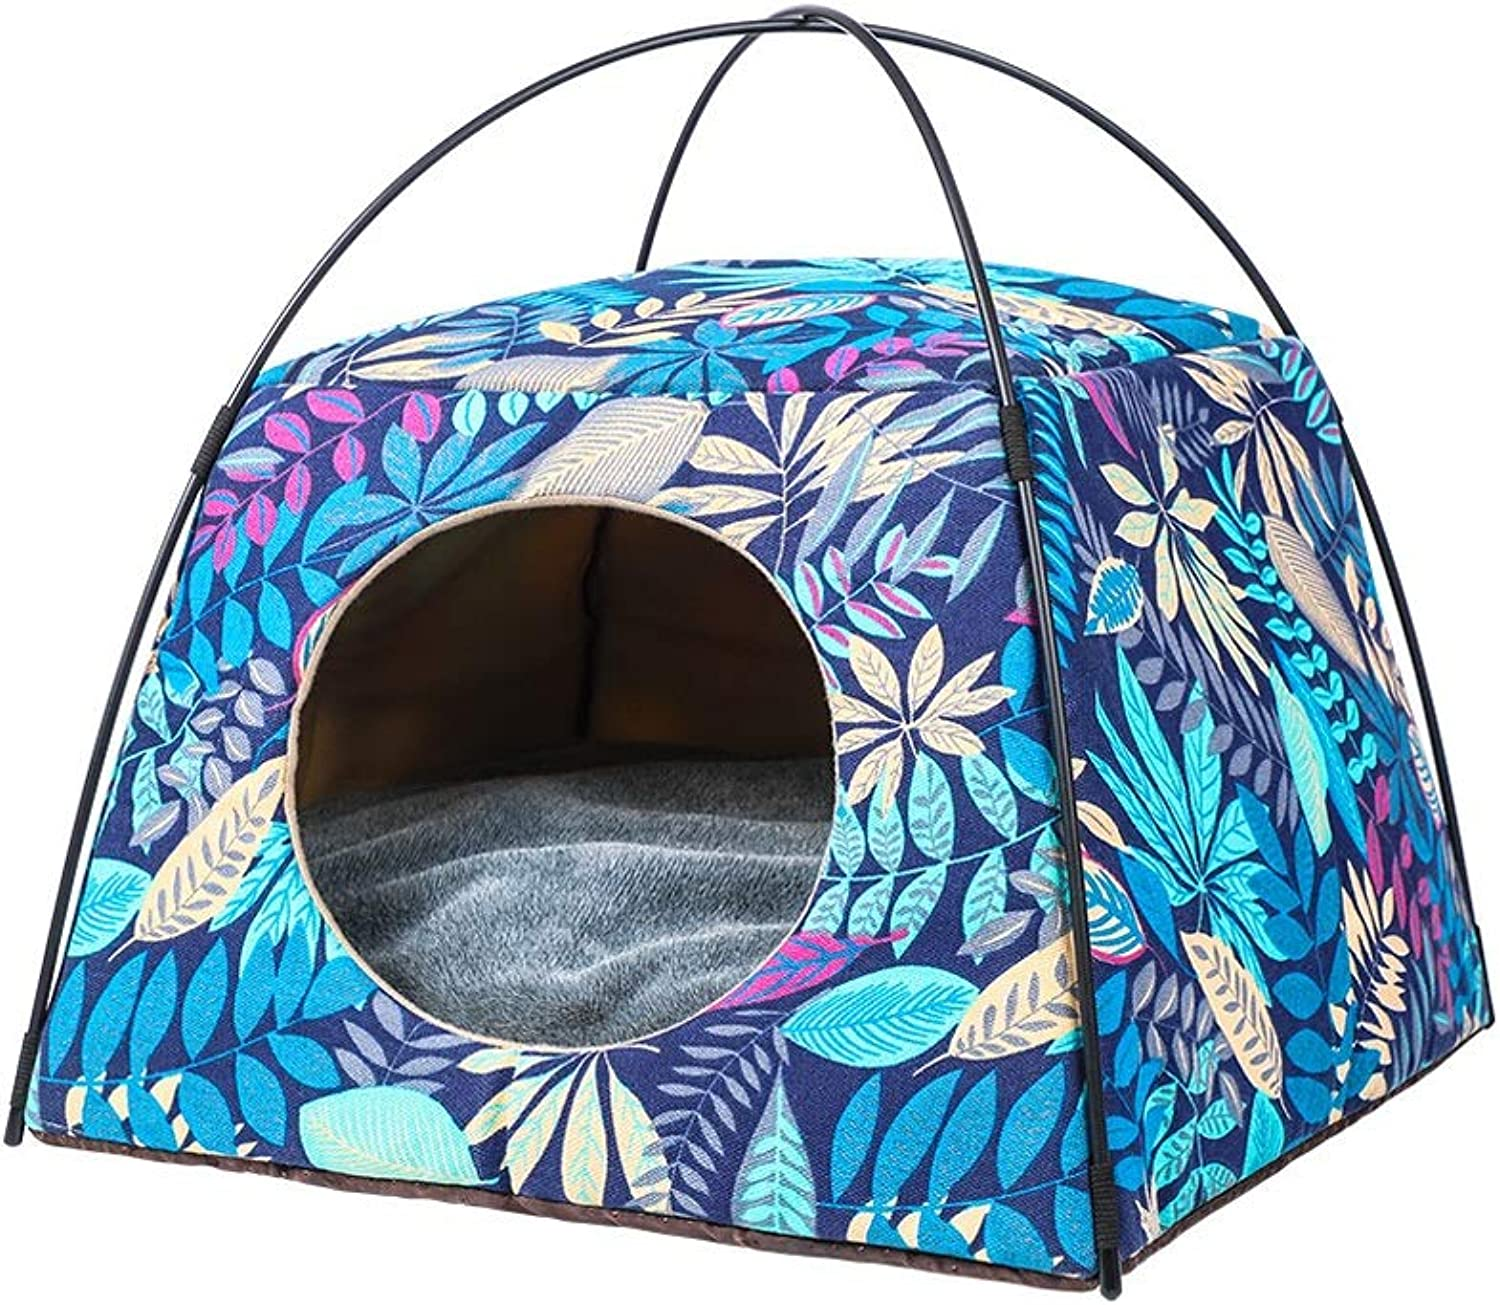 Kennel, Winter Warm Comfortable Cat Litter Dualuse Four Seasons Available Pet Nest Sofa Bed House Two colors Optional (color   bluee, Size   S)